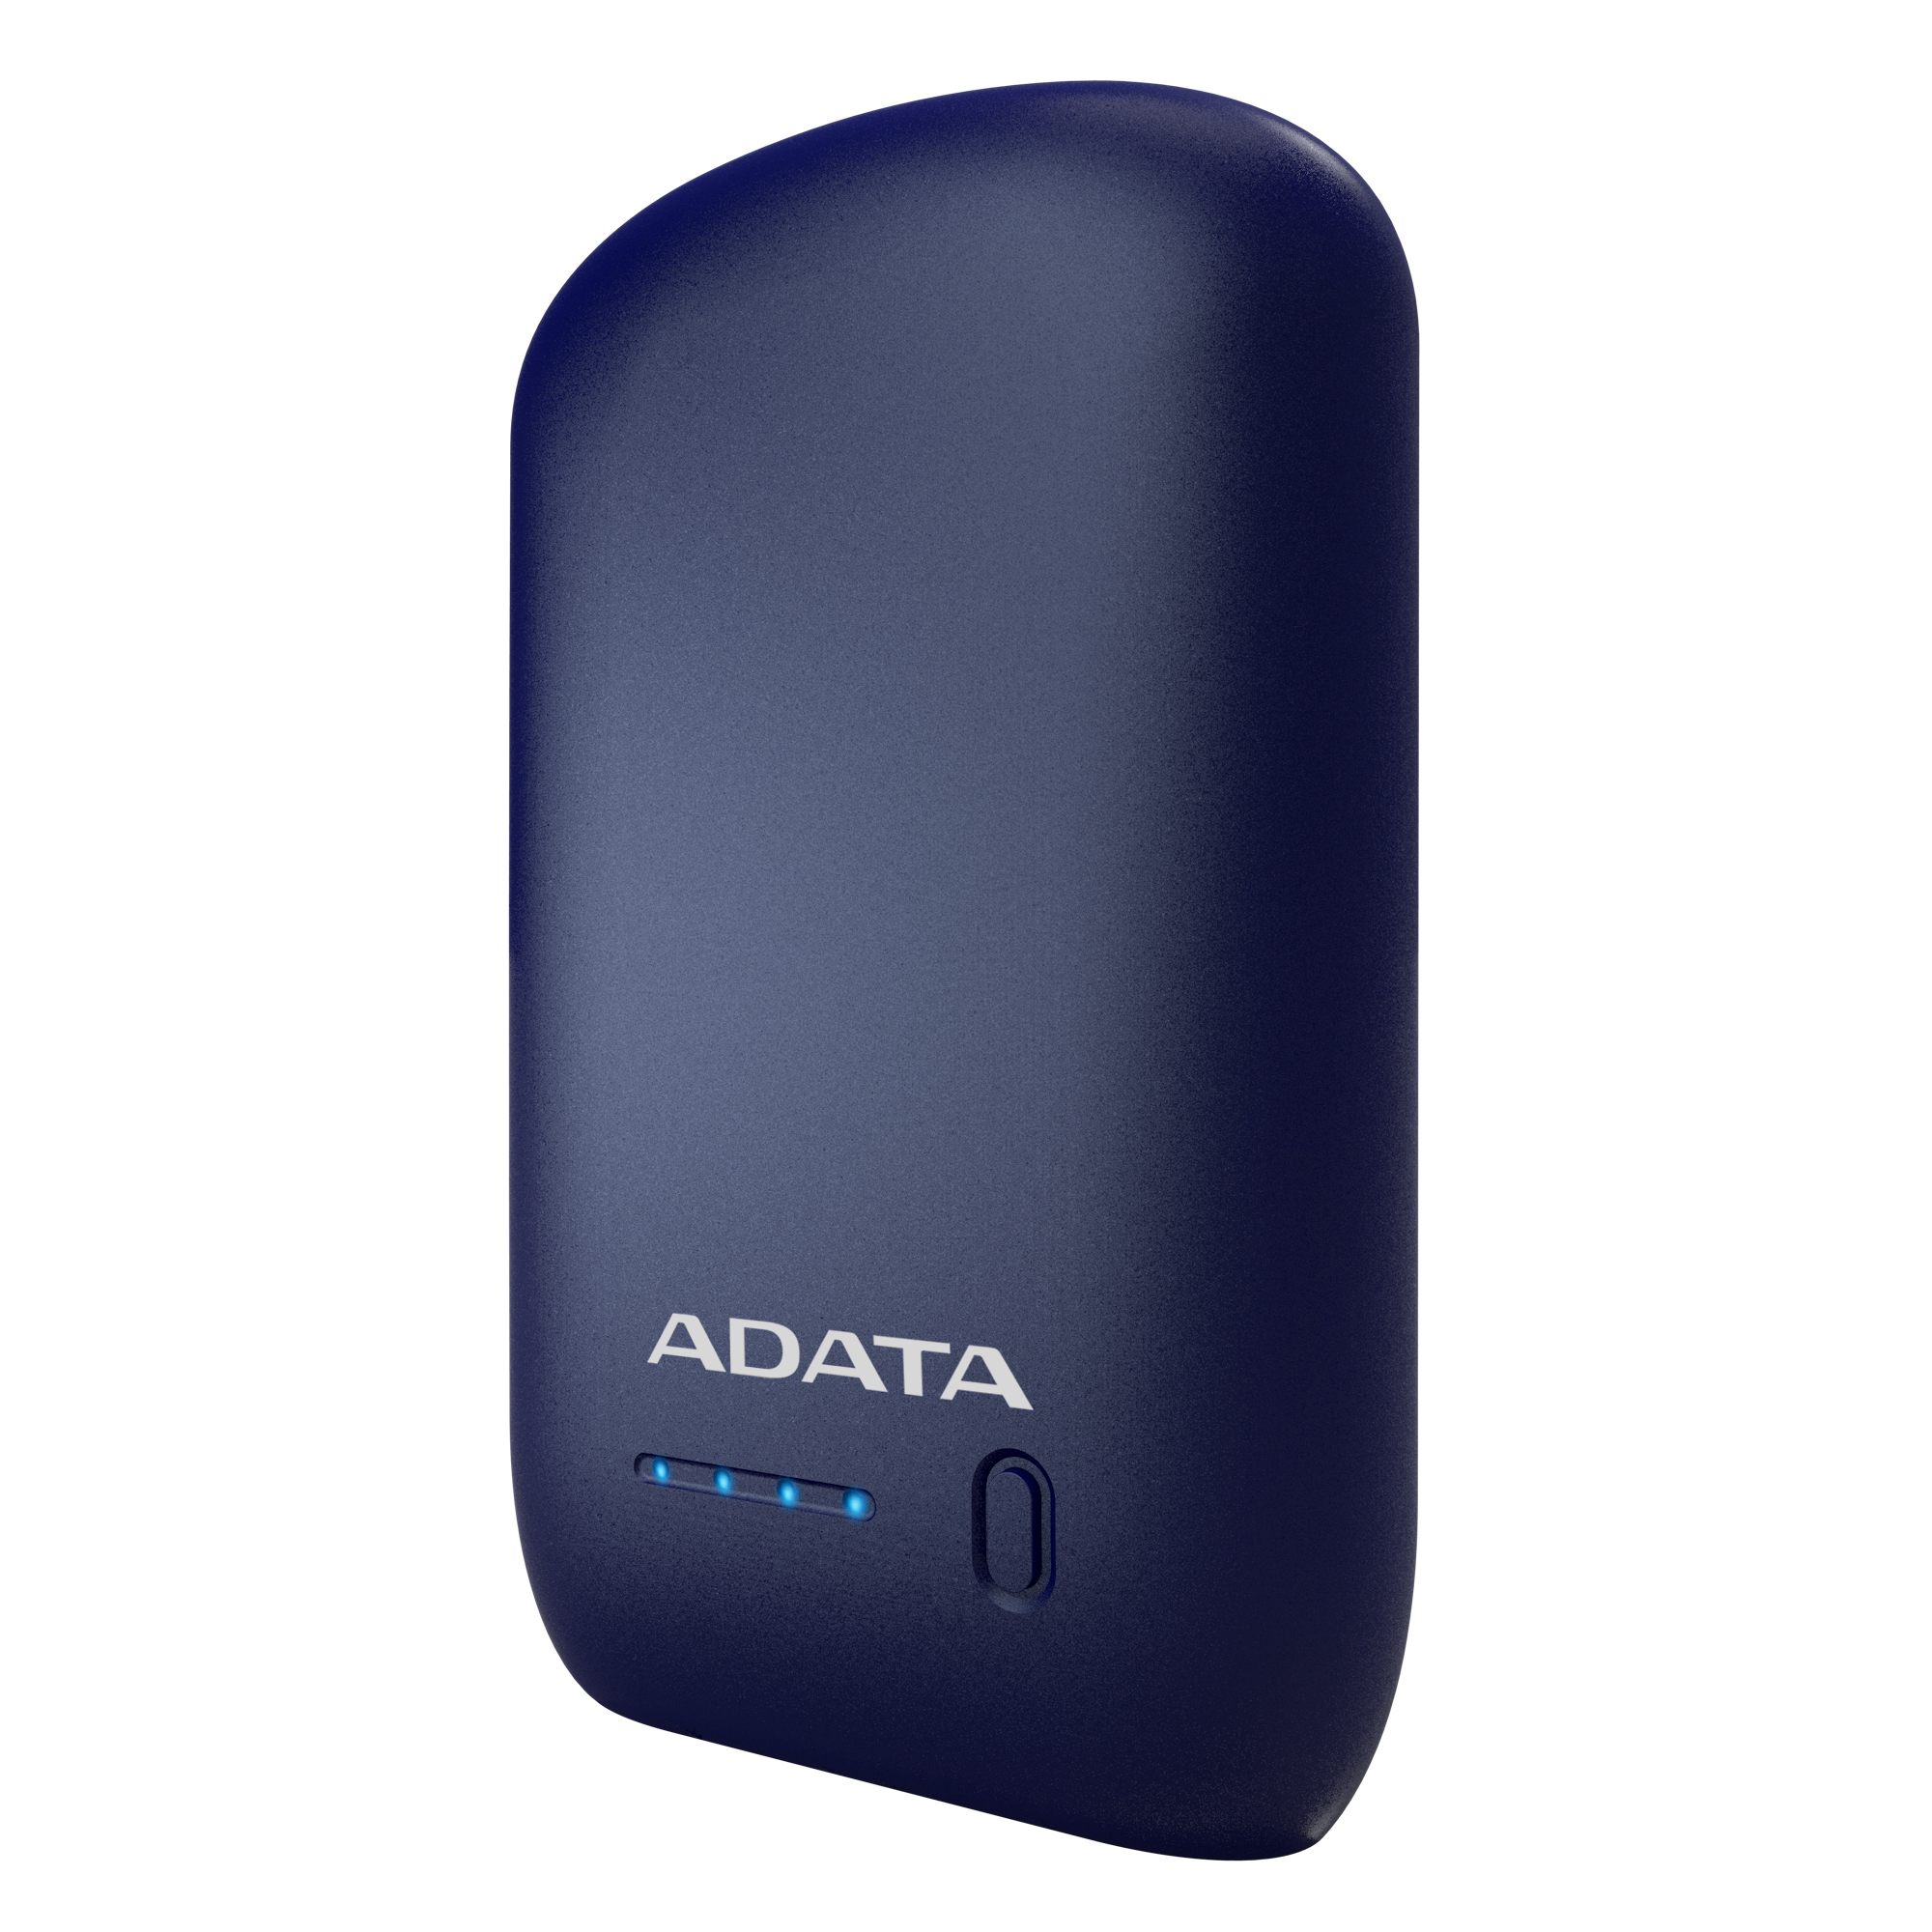 ADATA P10050 Power Bank 10050mAh modrá